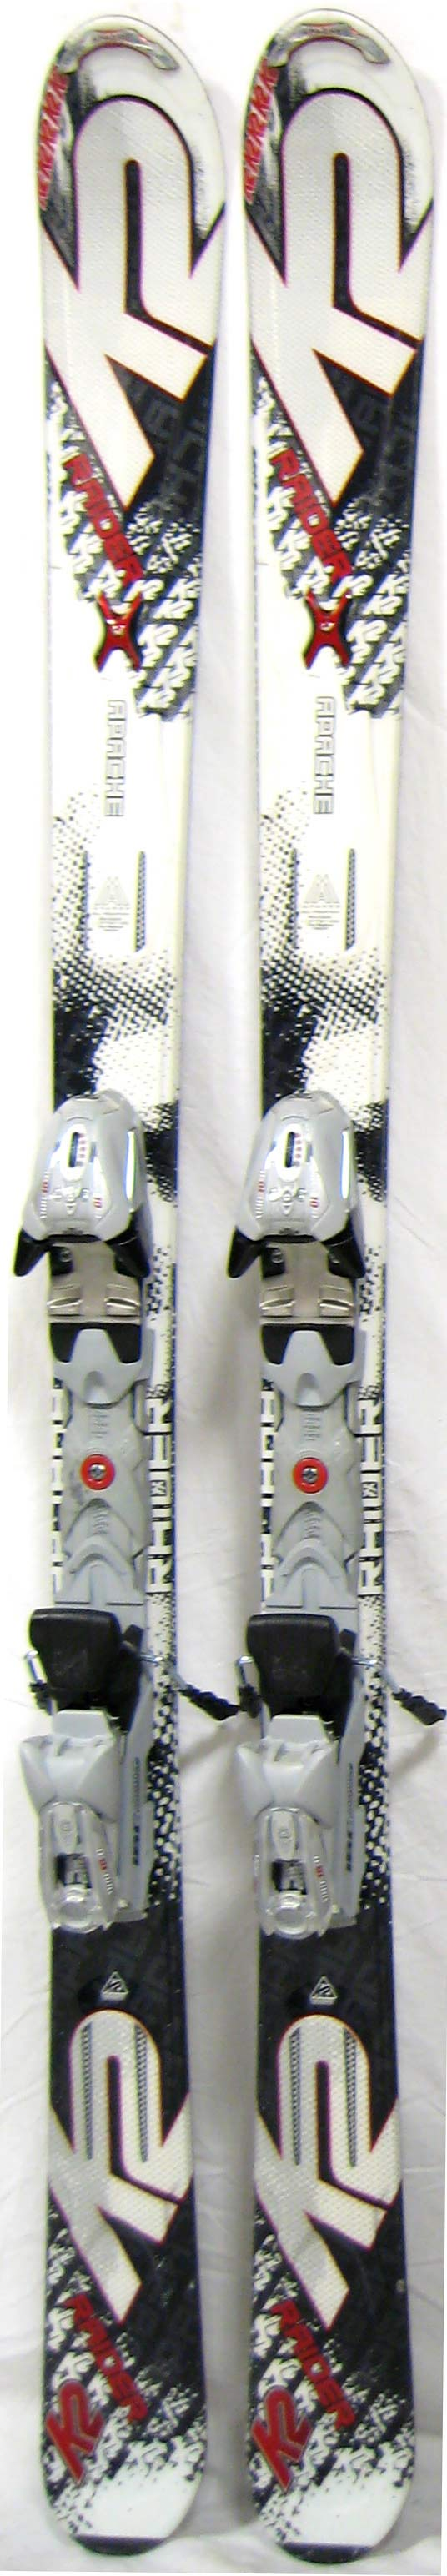 K apache raider cm skis w bindings mens all